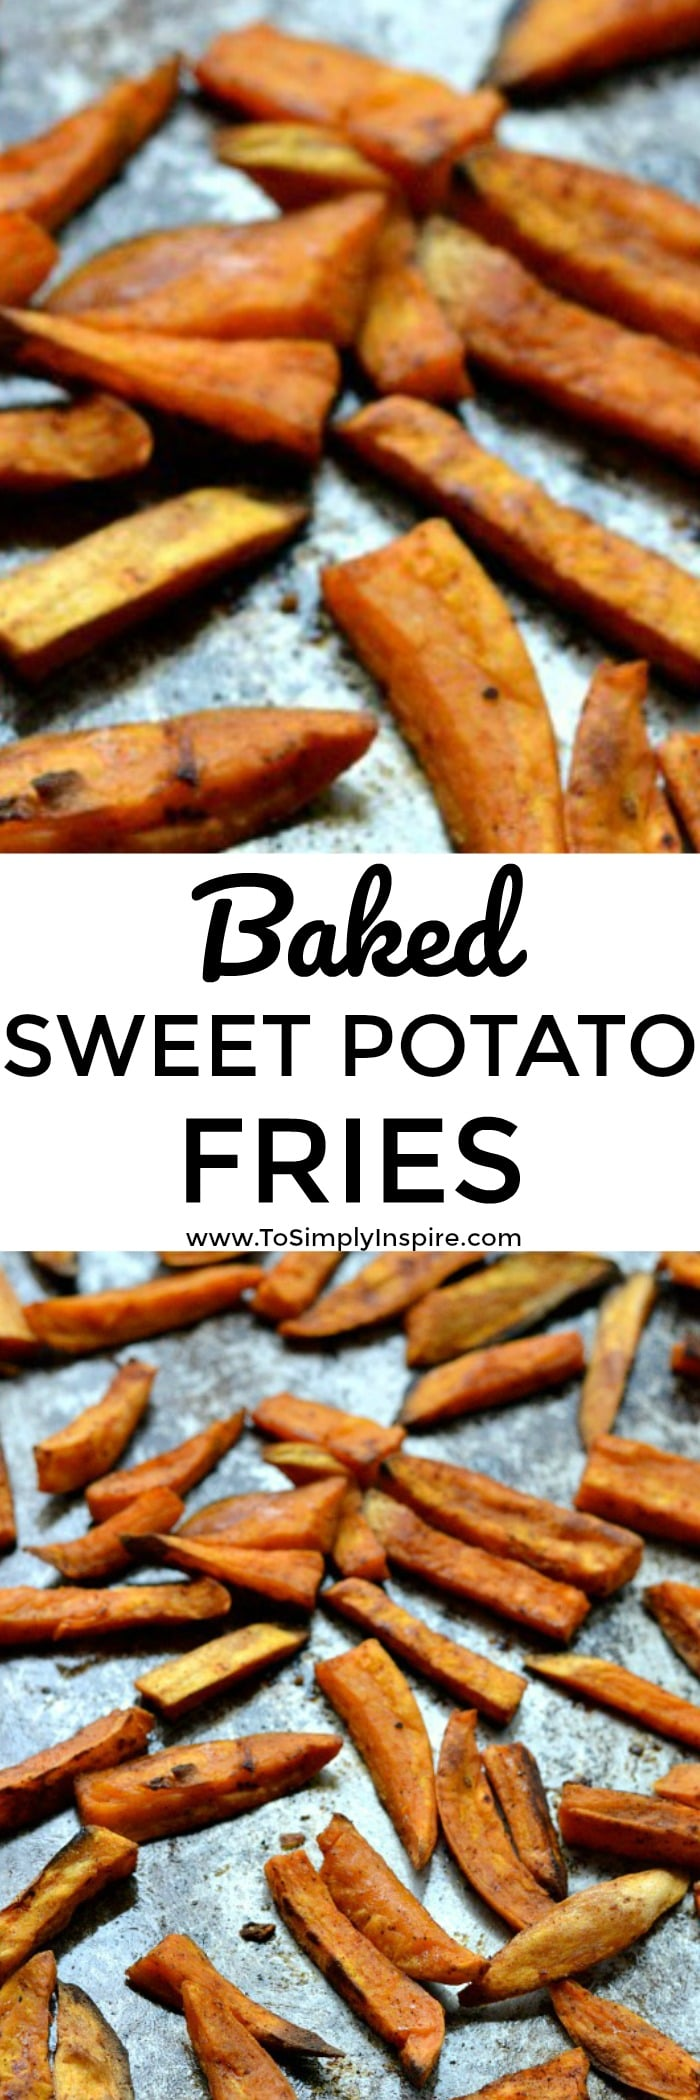 Oven baked sweet potato fries are a wonderful healthy addition to any meal. Seasoned to perfection and lightly crispy.